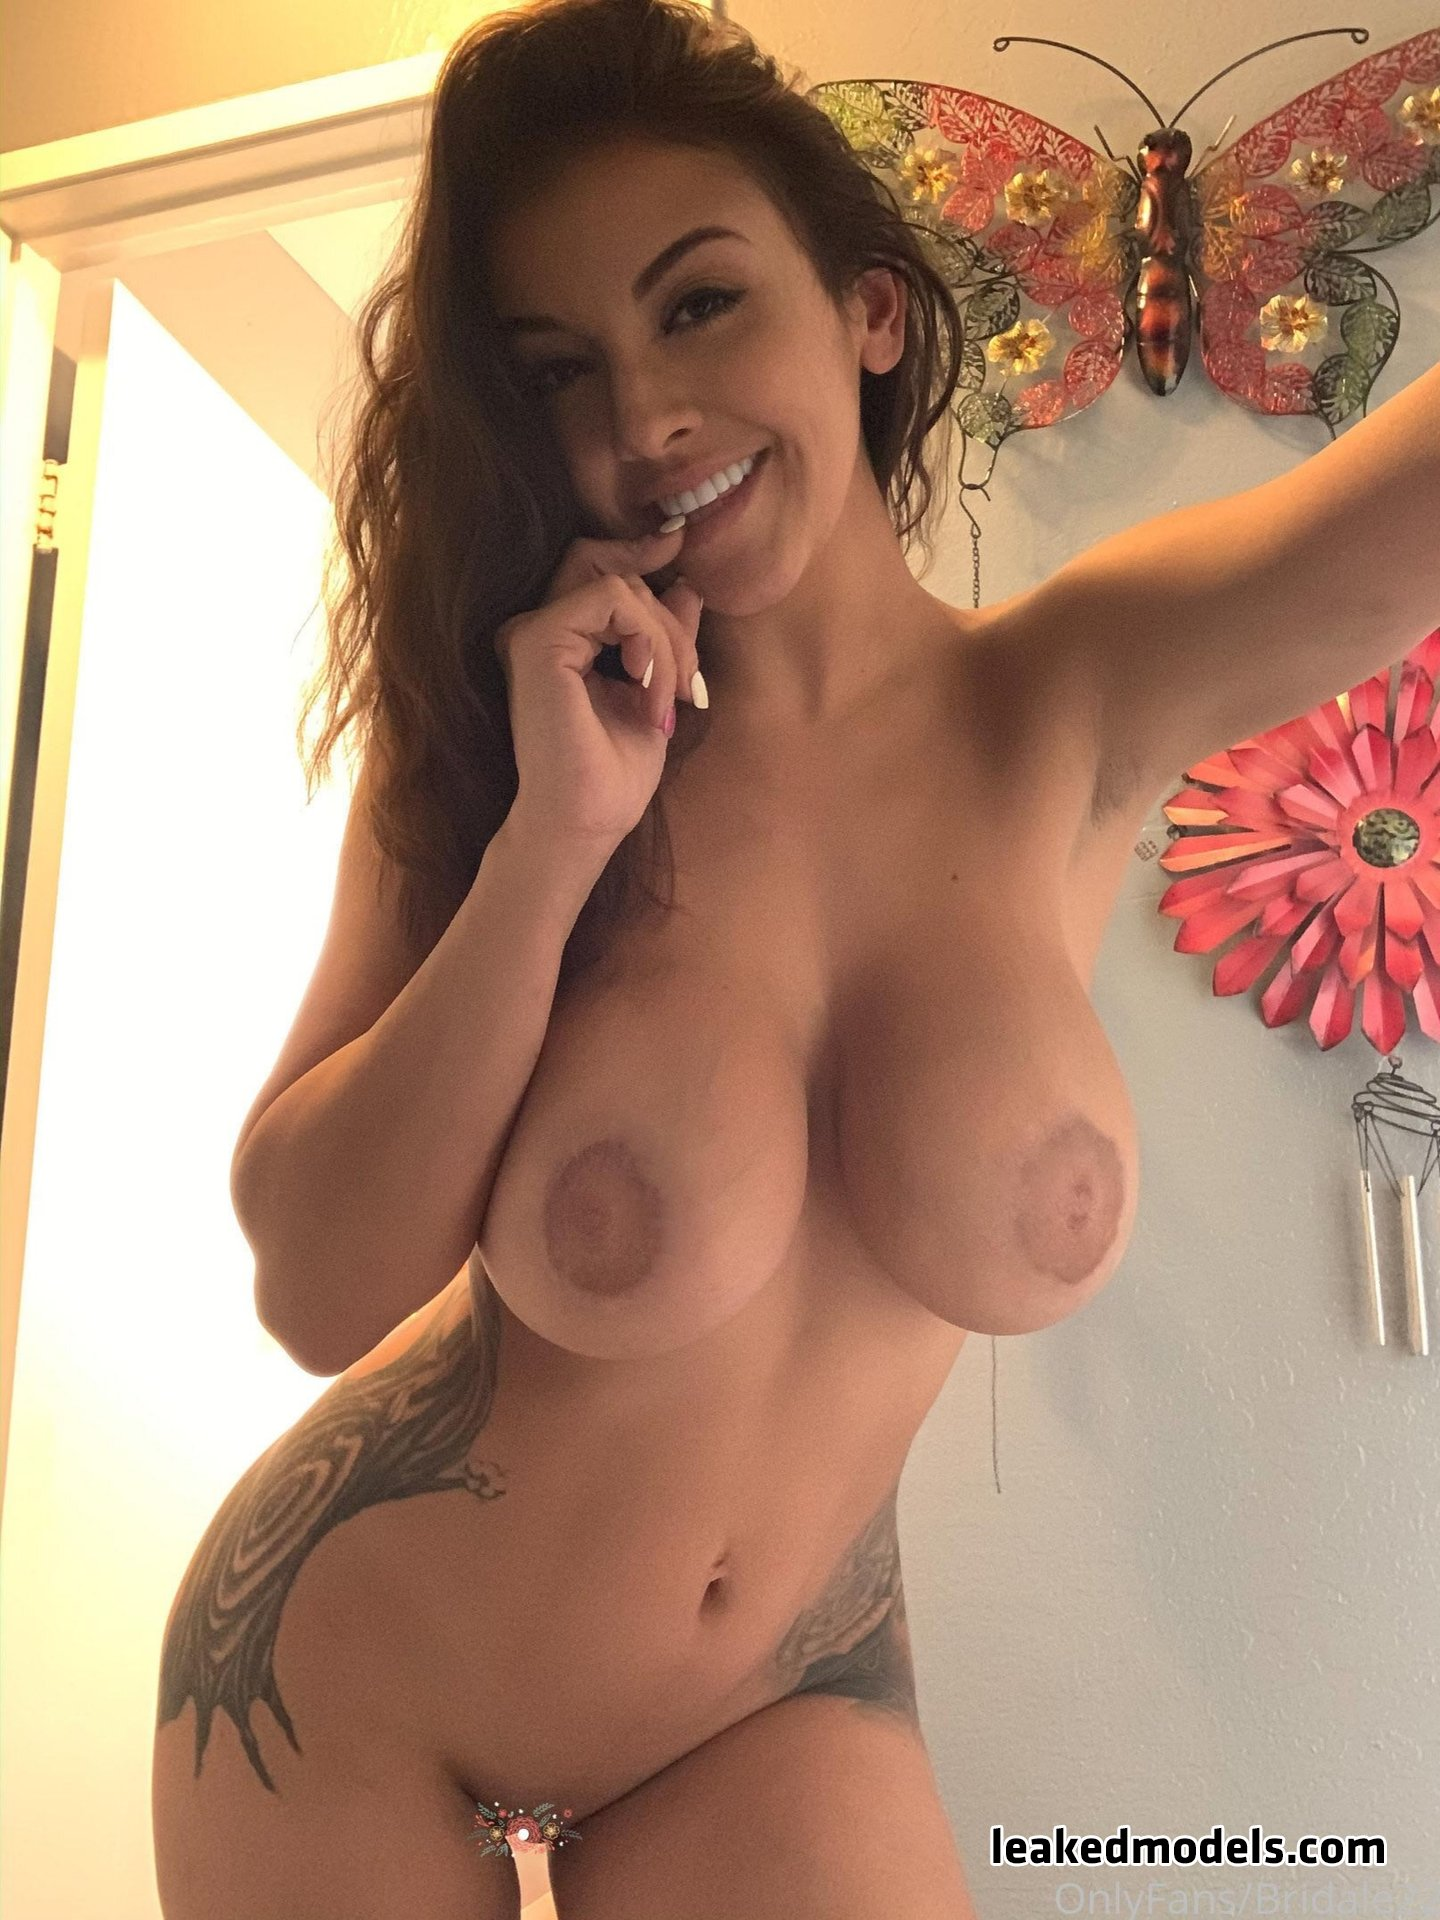 Brianna Marie Dale – bridale22 OnlyFans Nude Leaks (40 Photos)